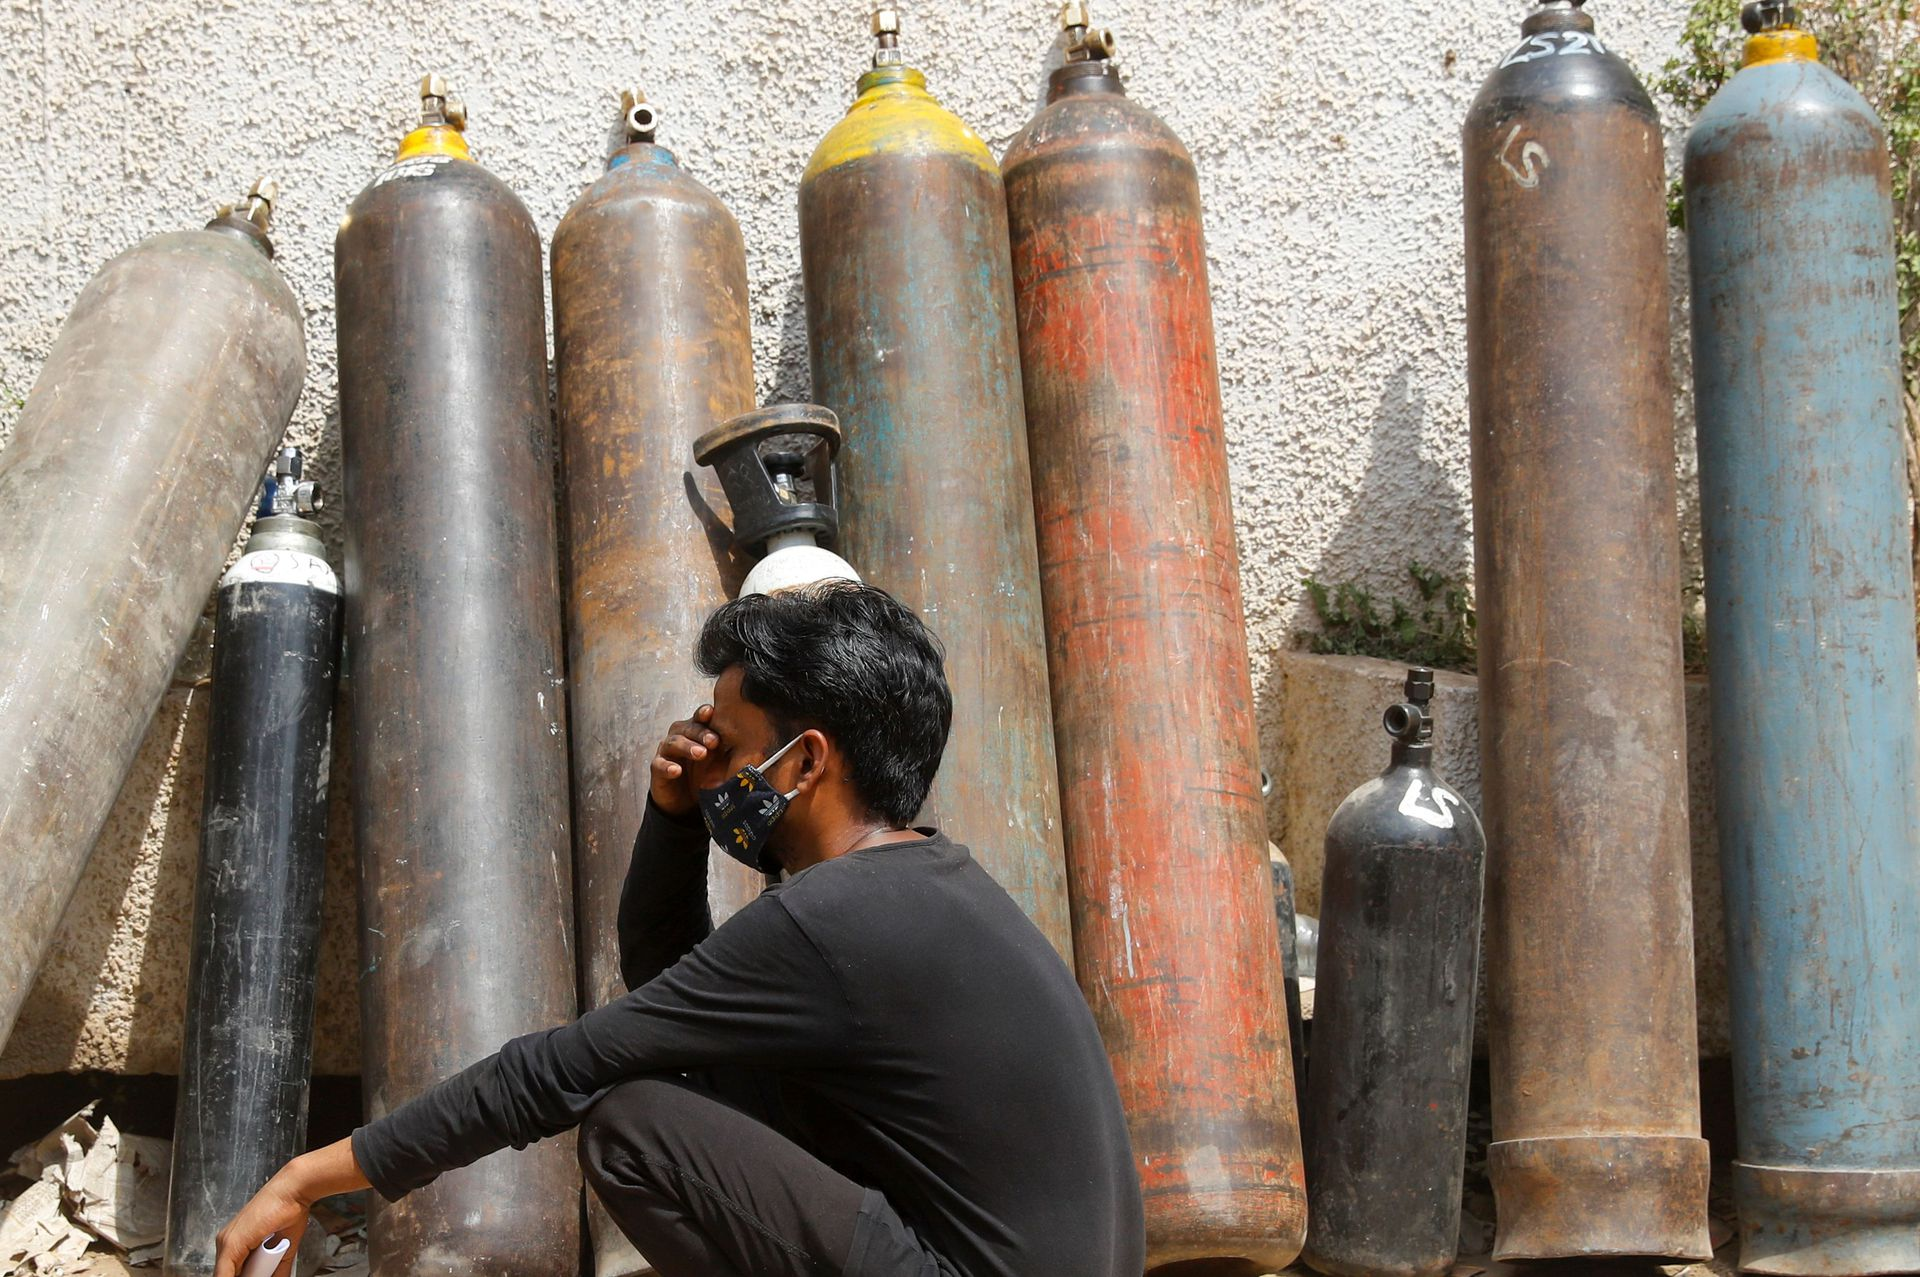 A man waits outside a factory to get his oxygen cylinder refilled, amidst the spread of the coronavirus disease (COVID-19) in New Delhi, India, April 28, 2021. Photo: Reuters